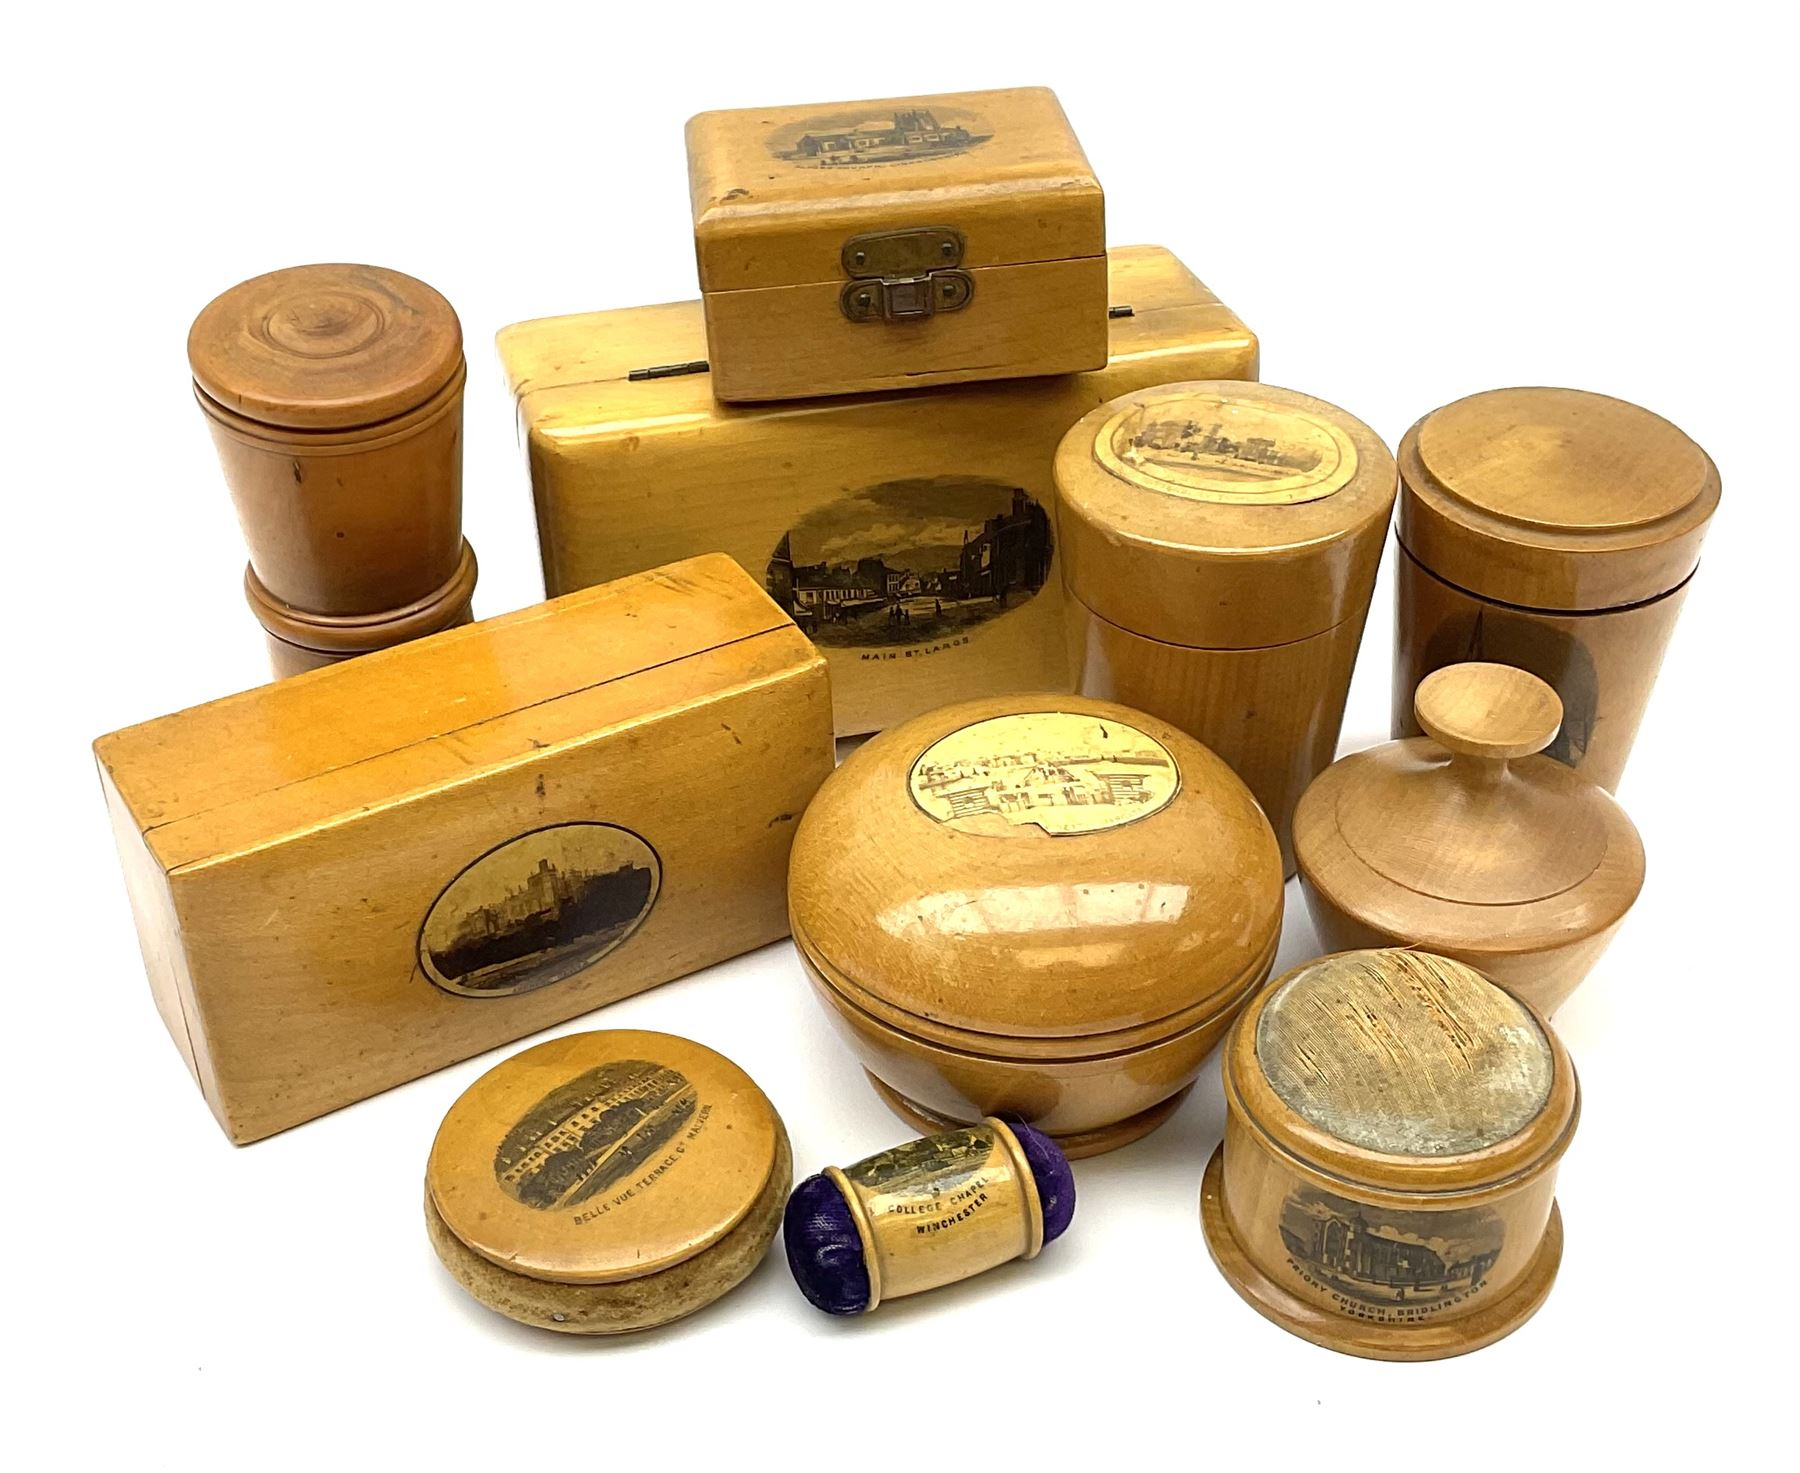 A group of 19th century Mauchline ware